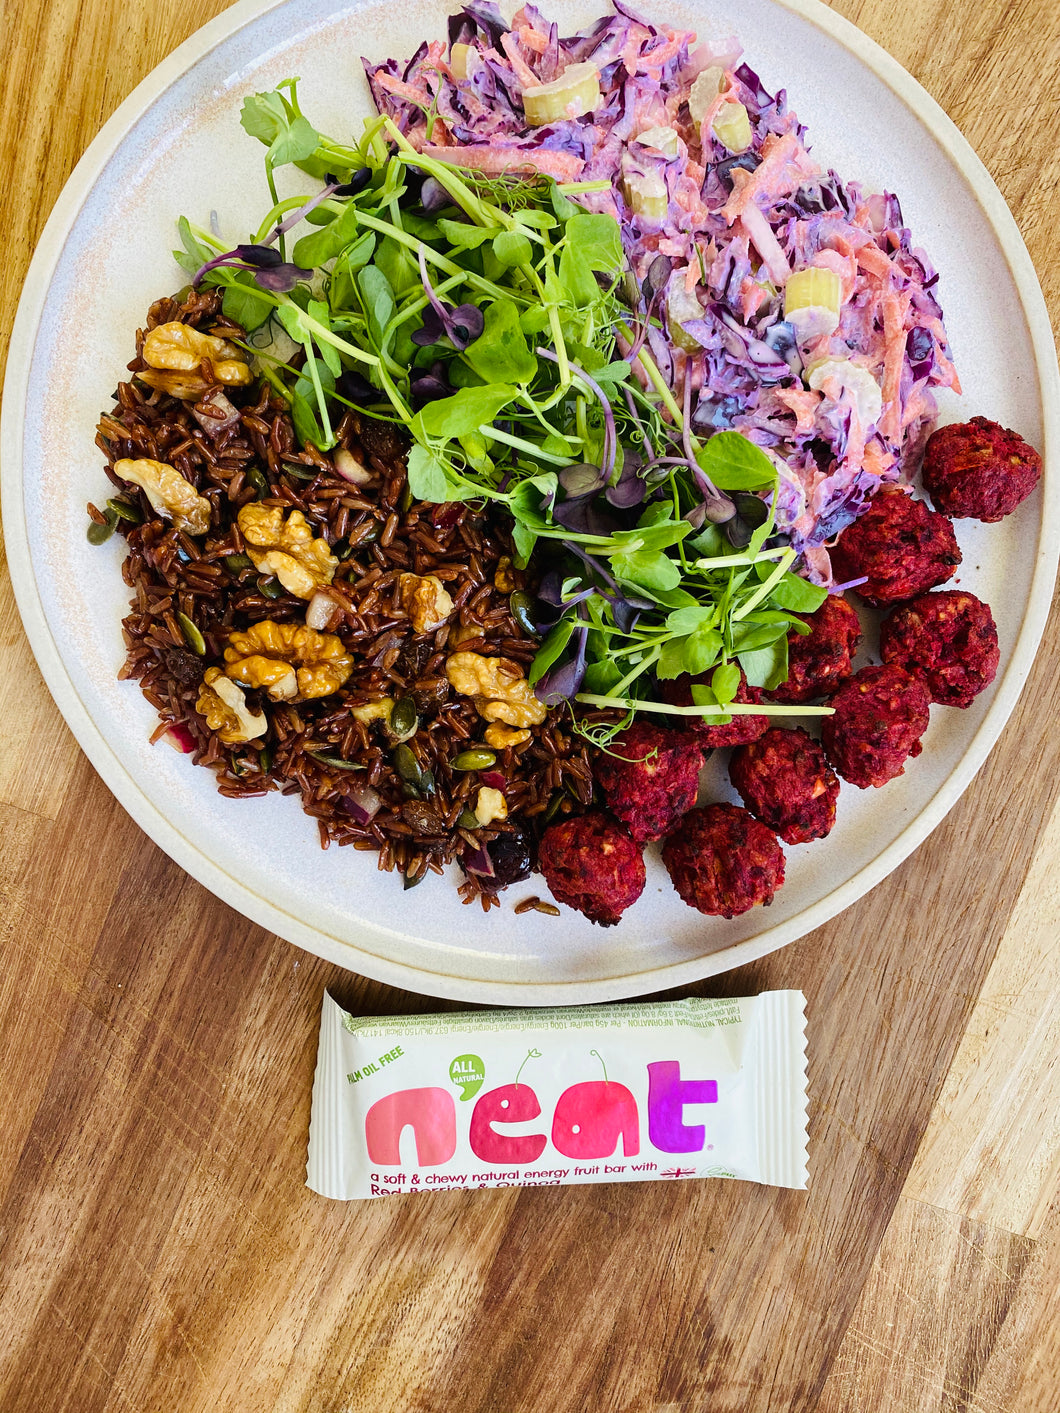 #4 Red rice, coleslaw salad with beetroot falafels and Neat Bar